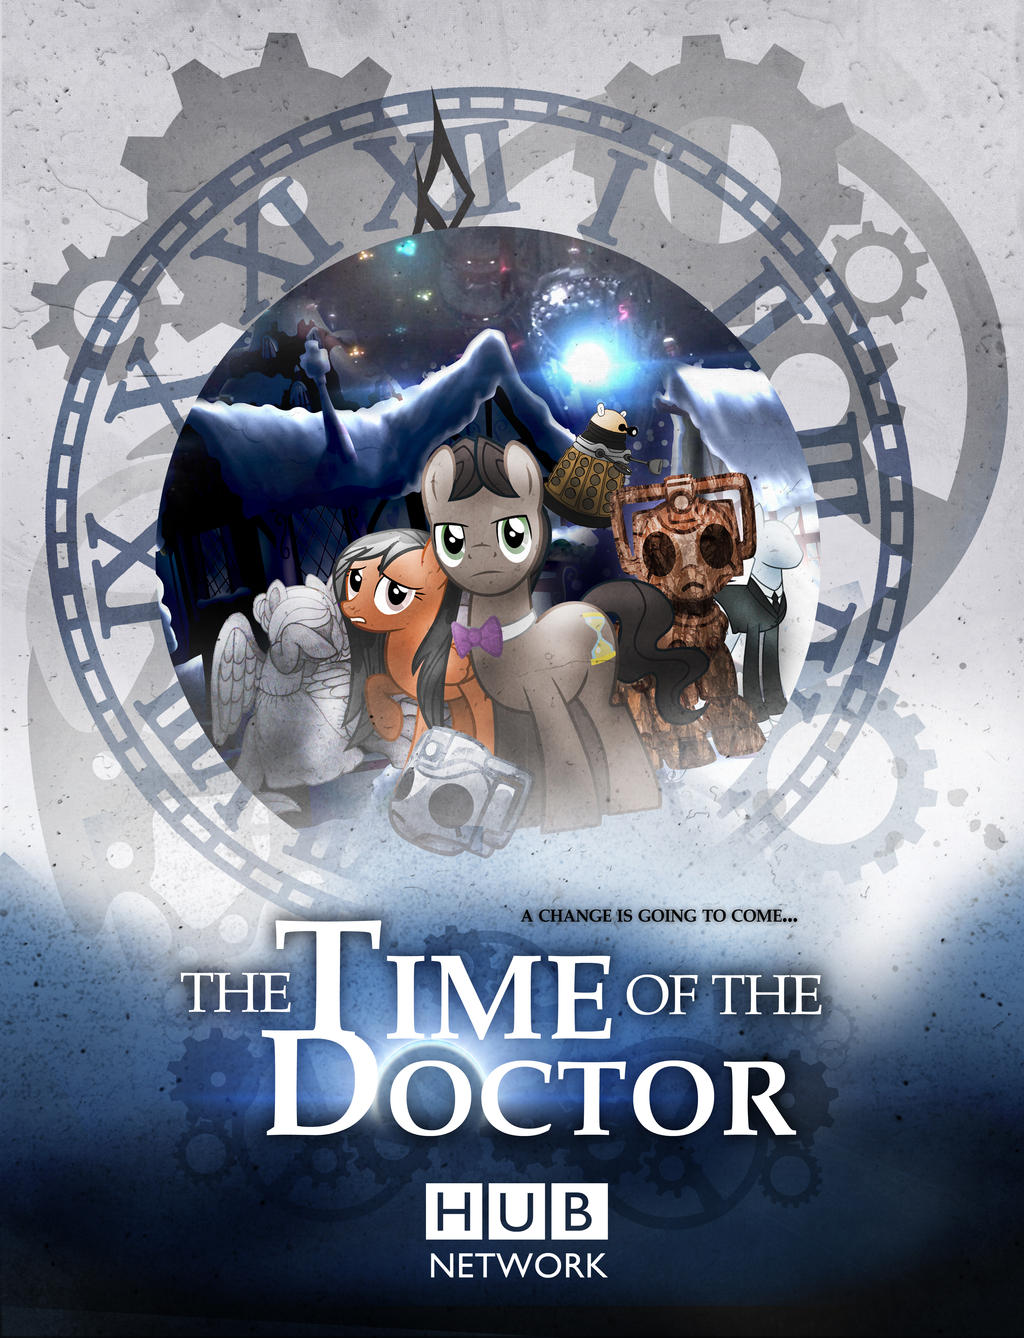 Time Of The Doctor (Whooves Xmas Poster) by sitrirokoia